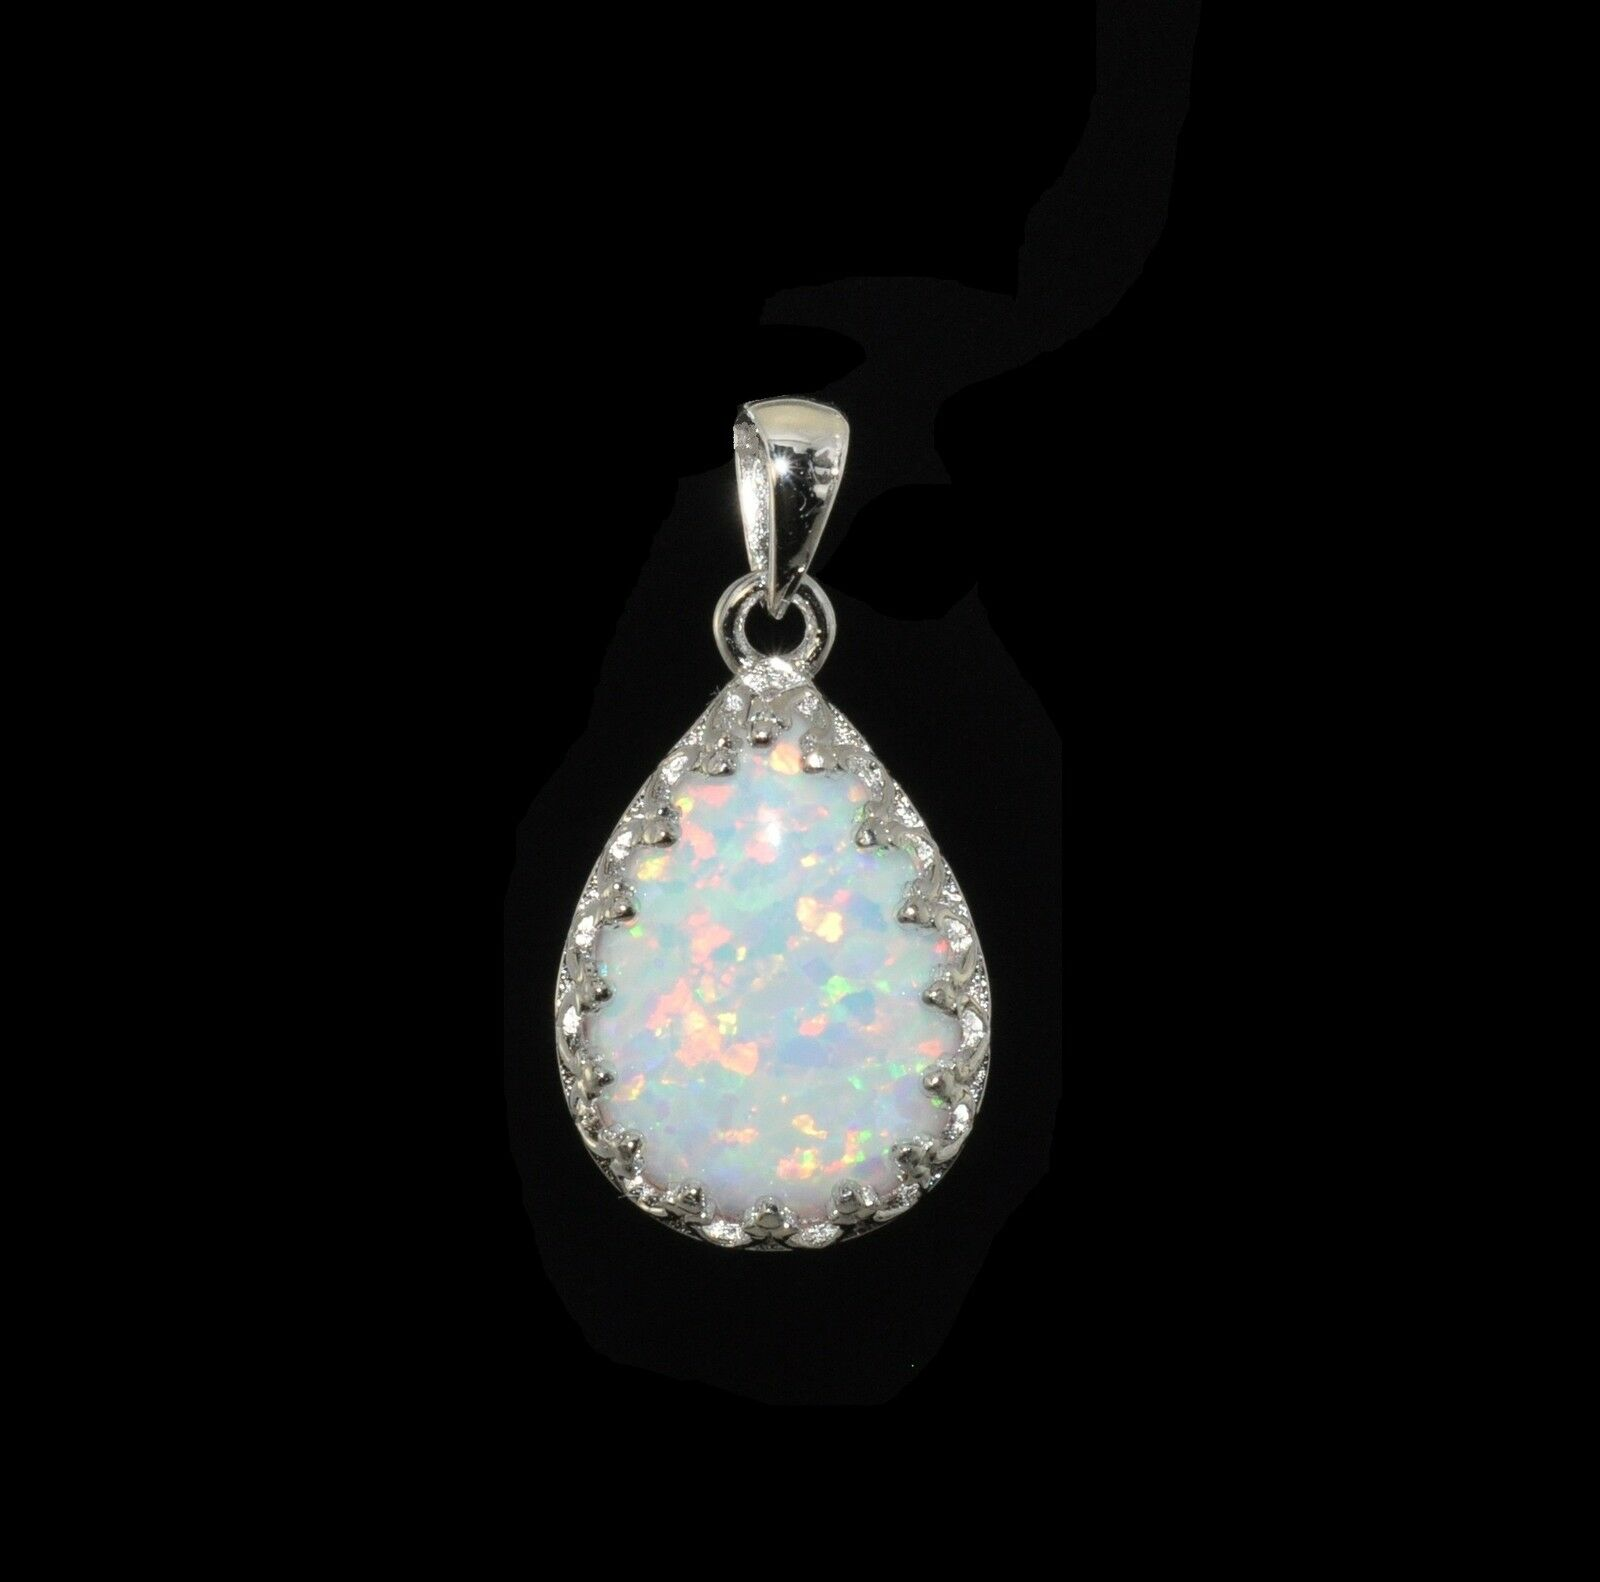 blue collections all australian opal fire pendant island thumbnail original products coco clothing sterling silver jewelry